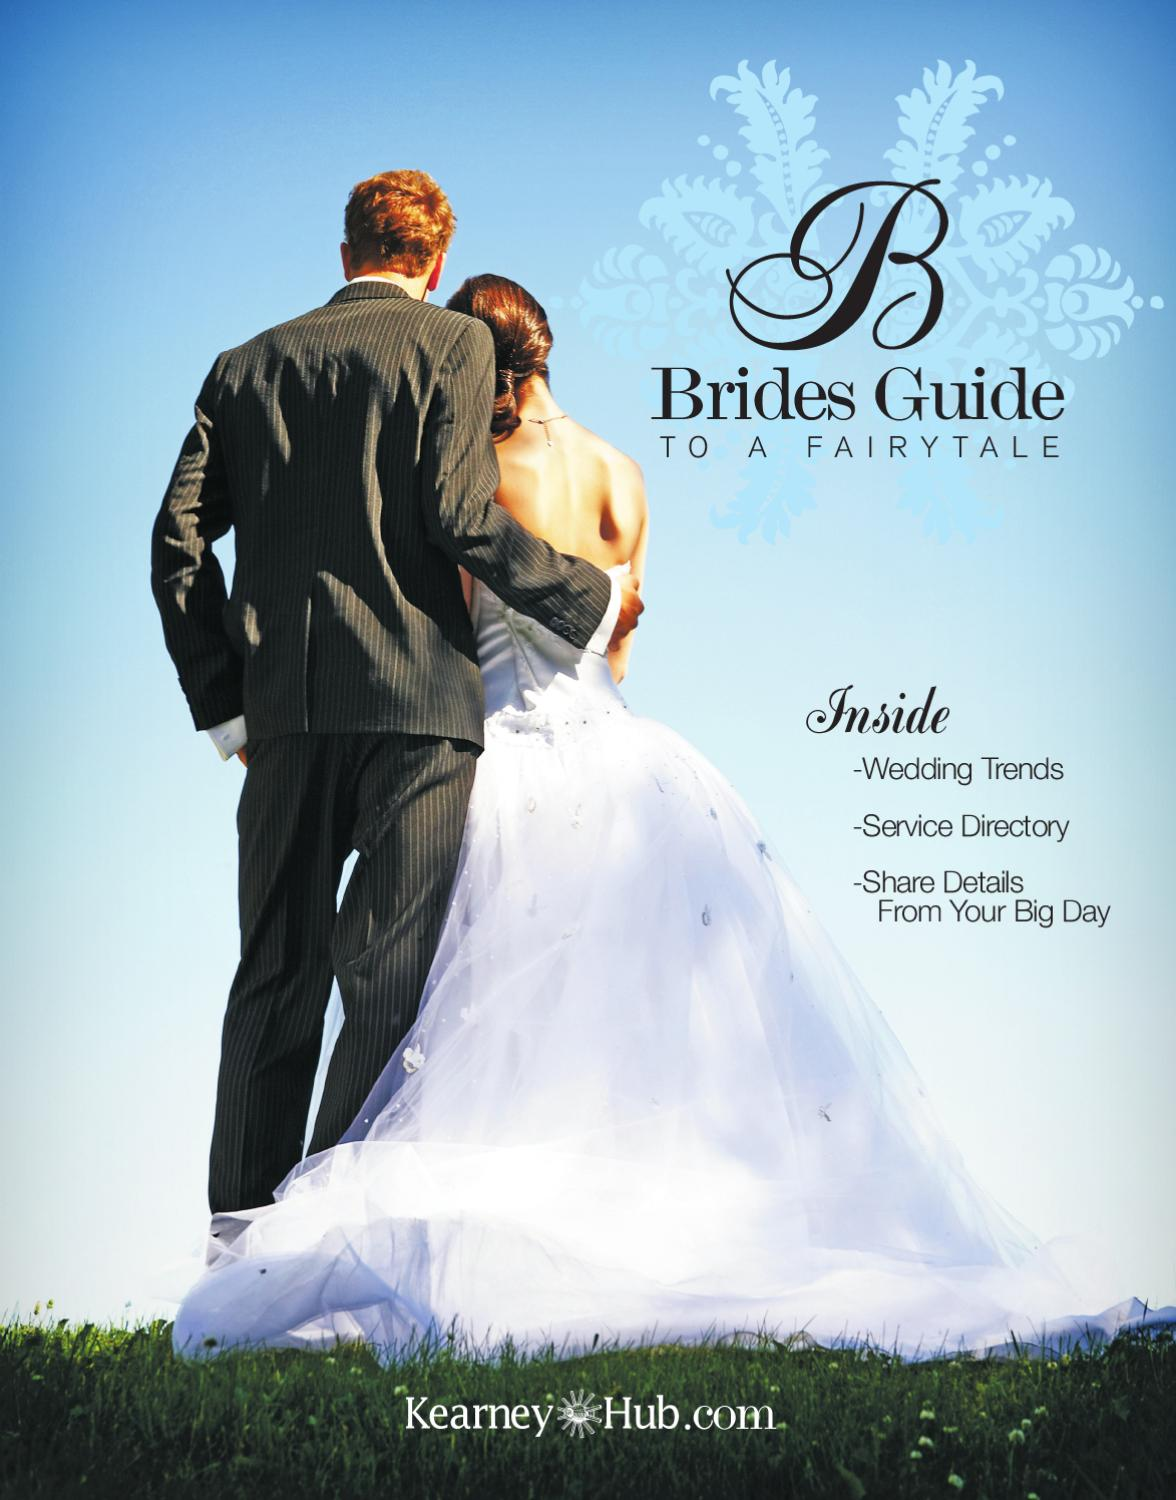 Bridal Guide 2011 By Kearney Hub Issuu